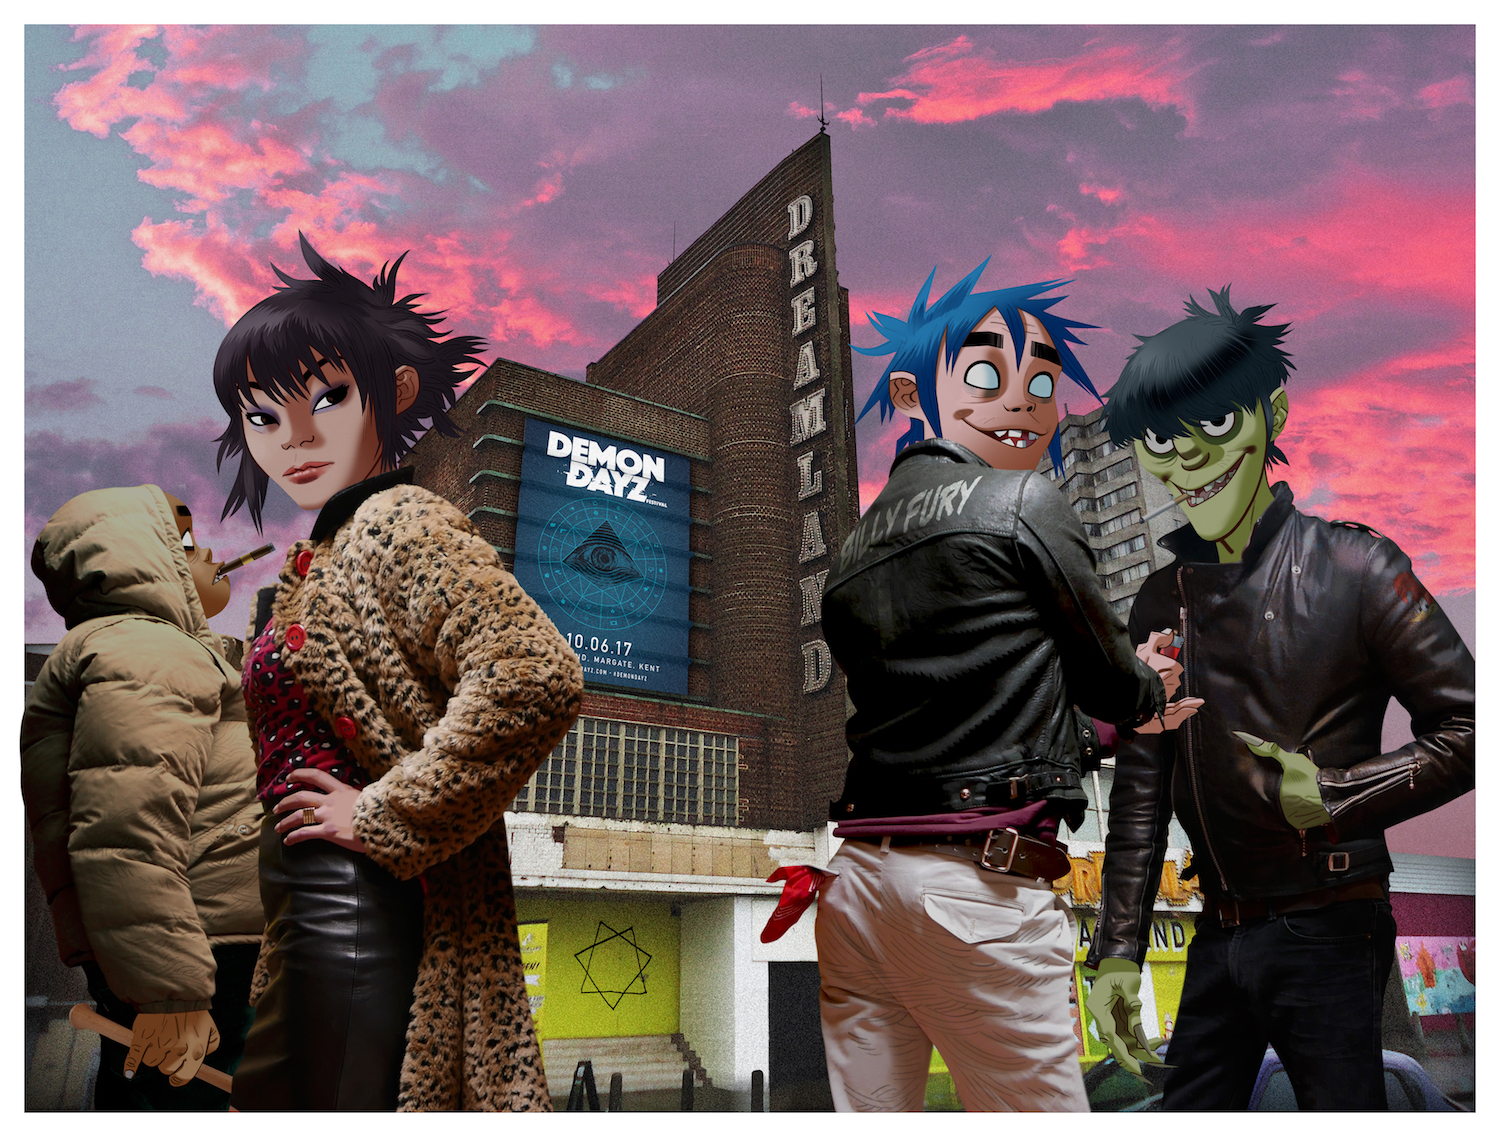 Gorillaz_Demon-Dayz_Dreamland